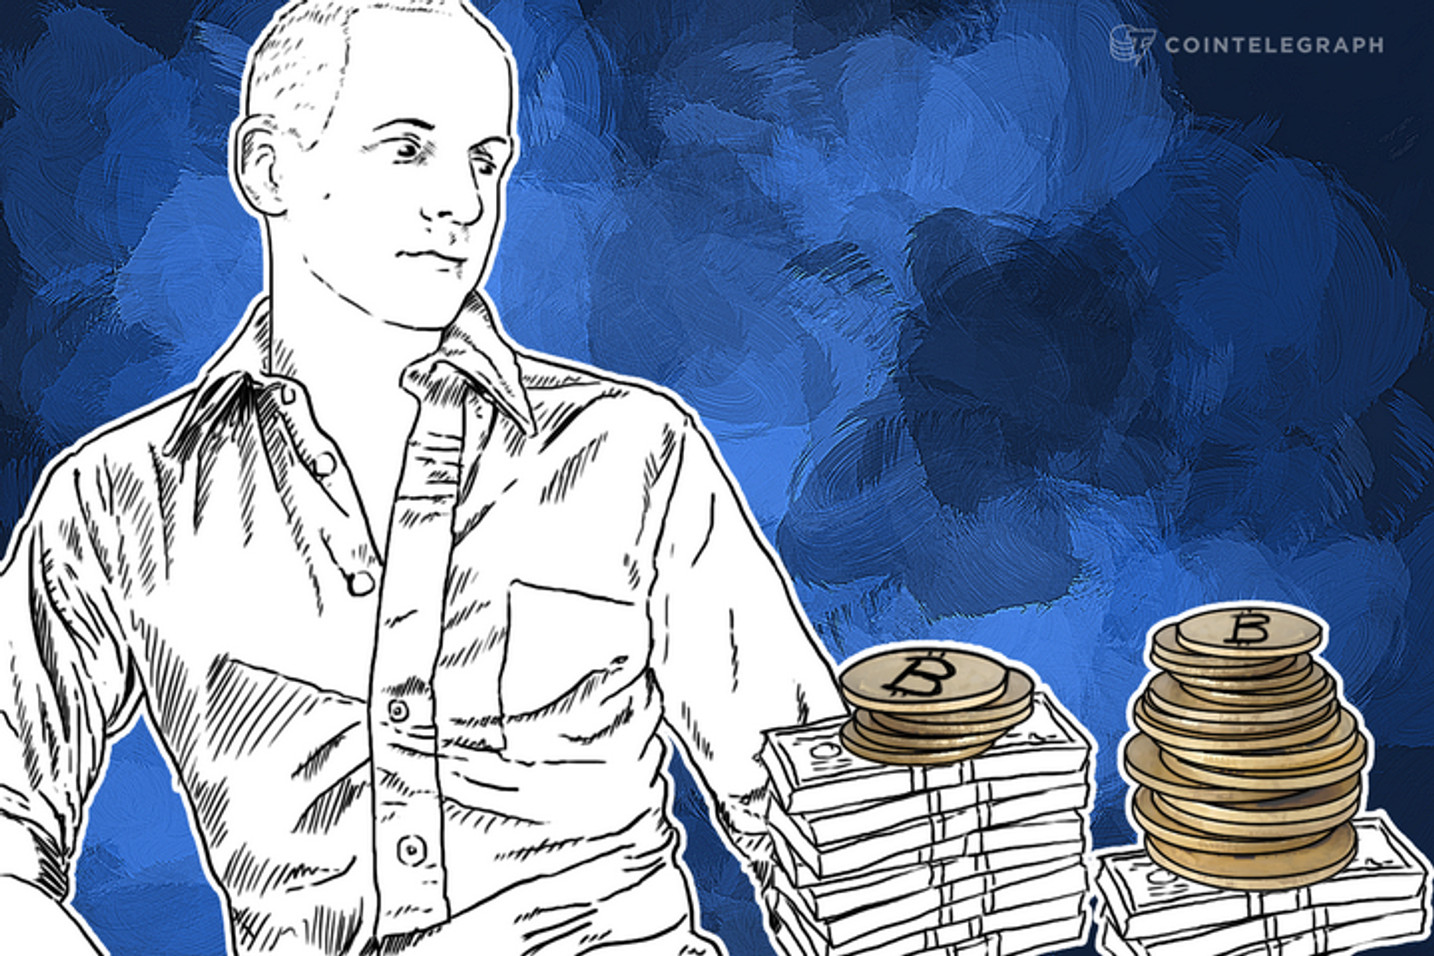 Survey: Lower-Income Populations Are More Likely to Adopt Bitcoin